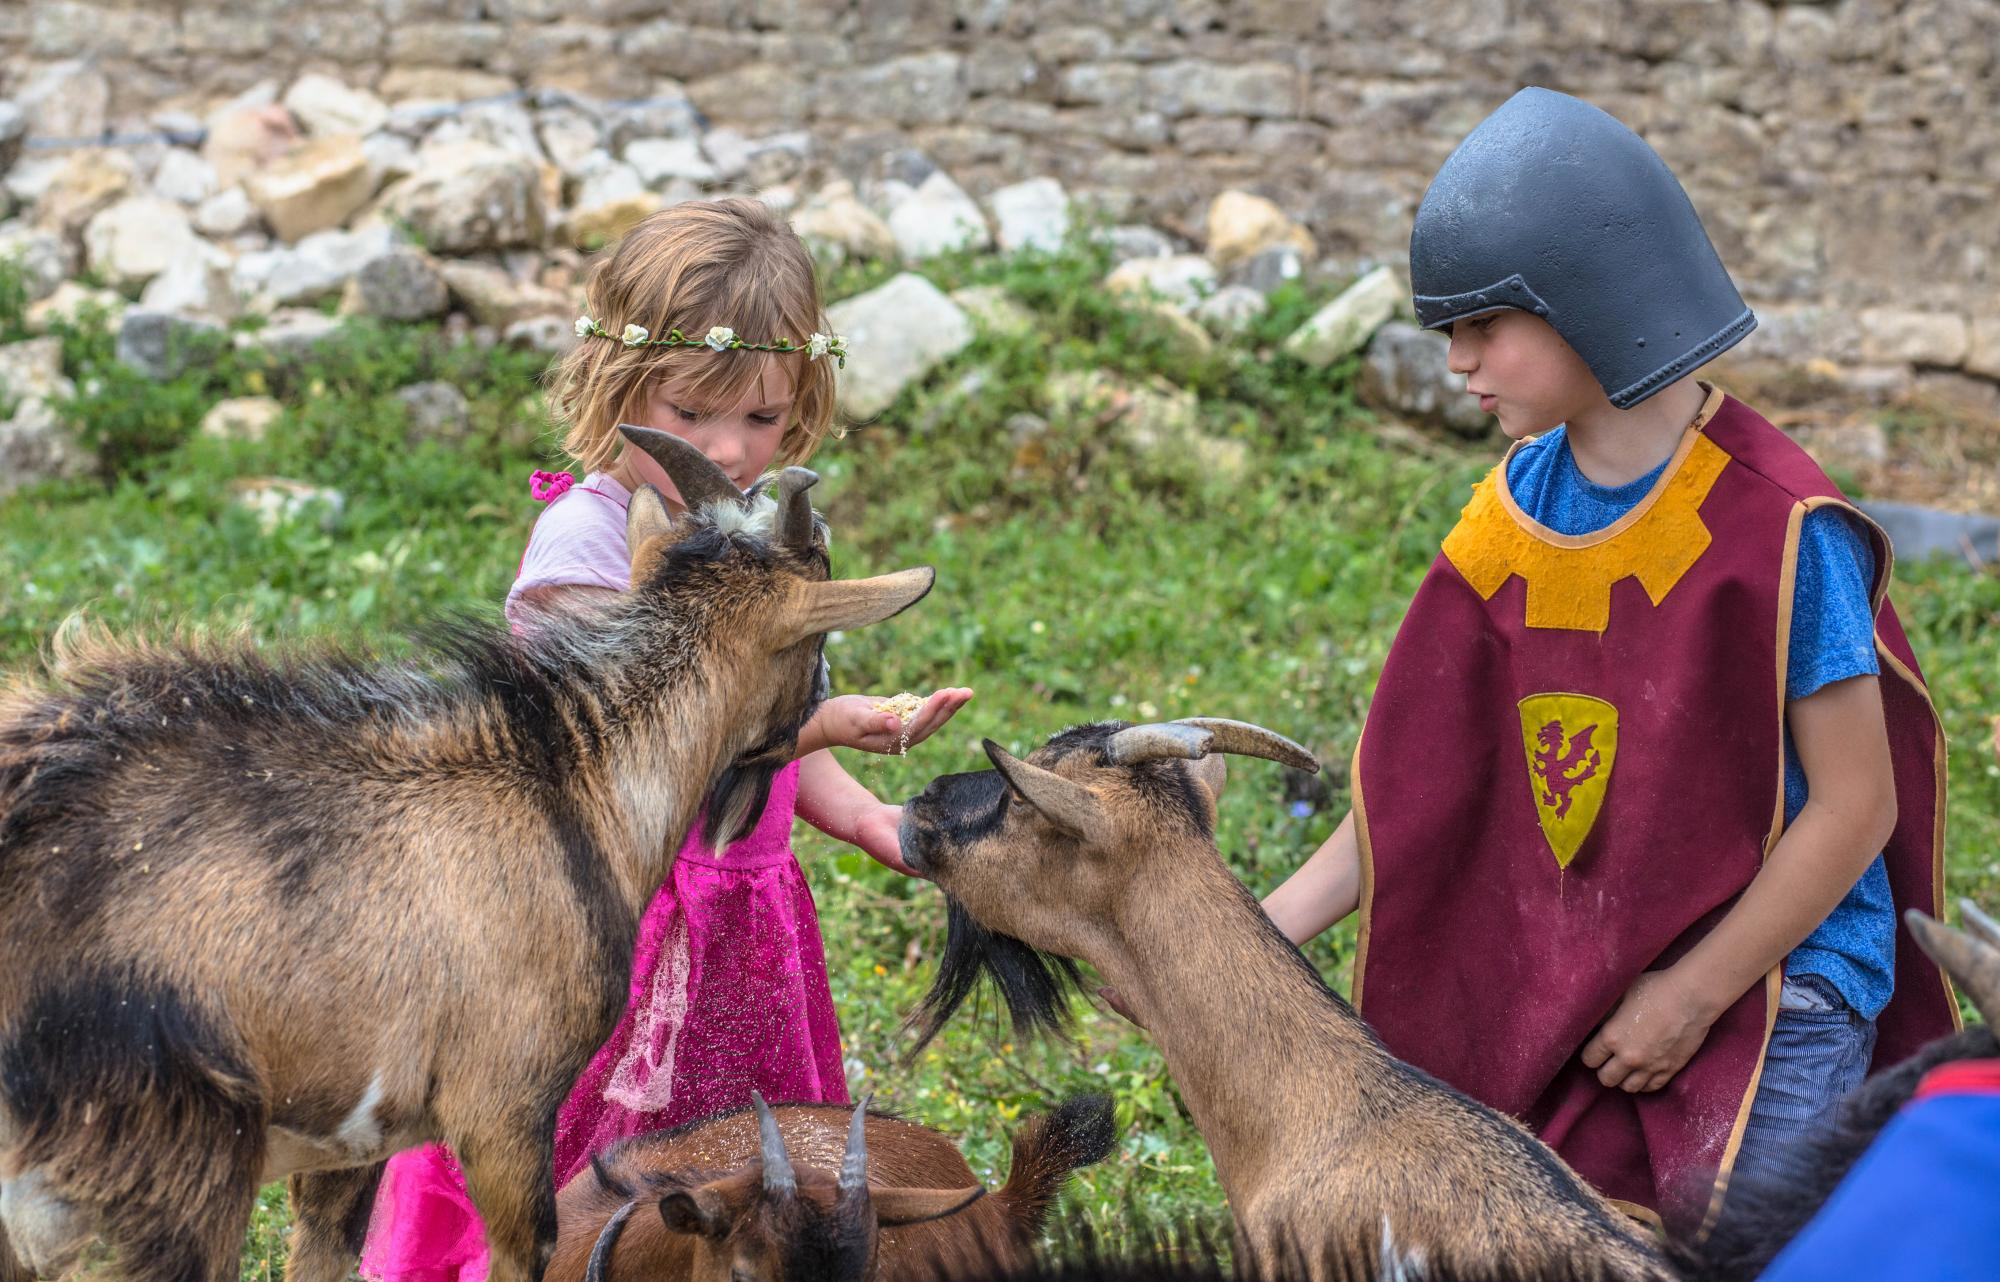 The castle farmyard - Fortified castle and medieval theme park in Charente Maritime